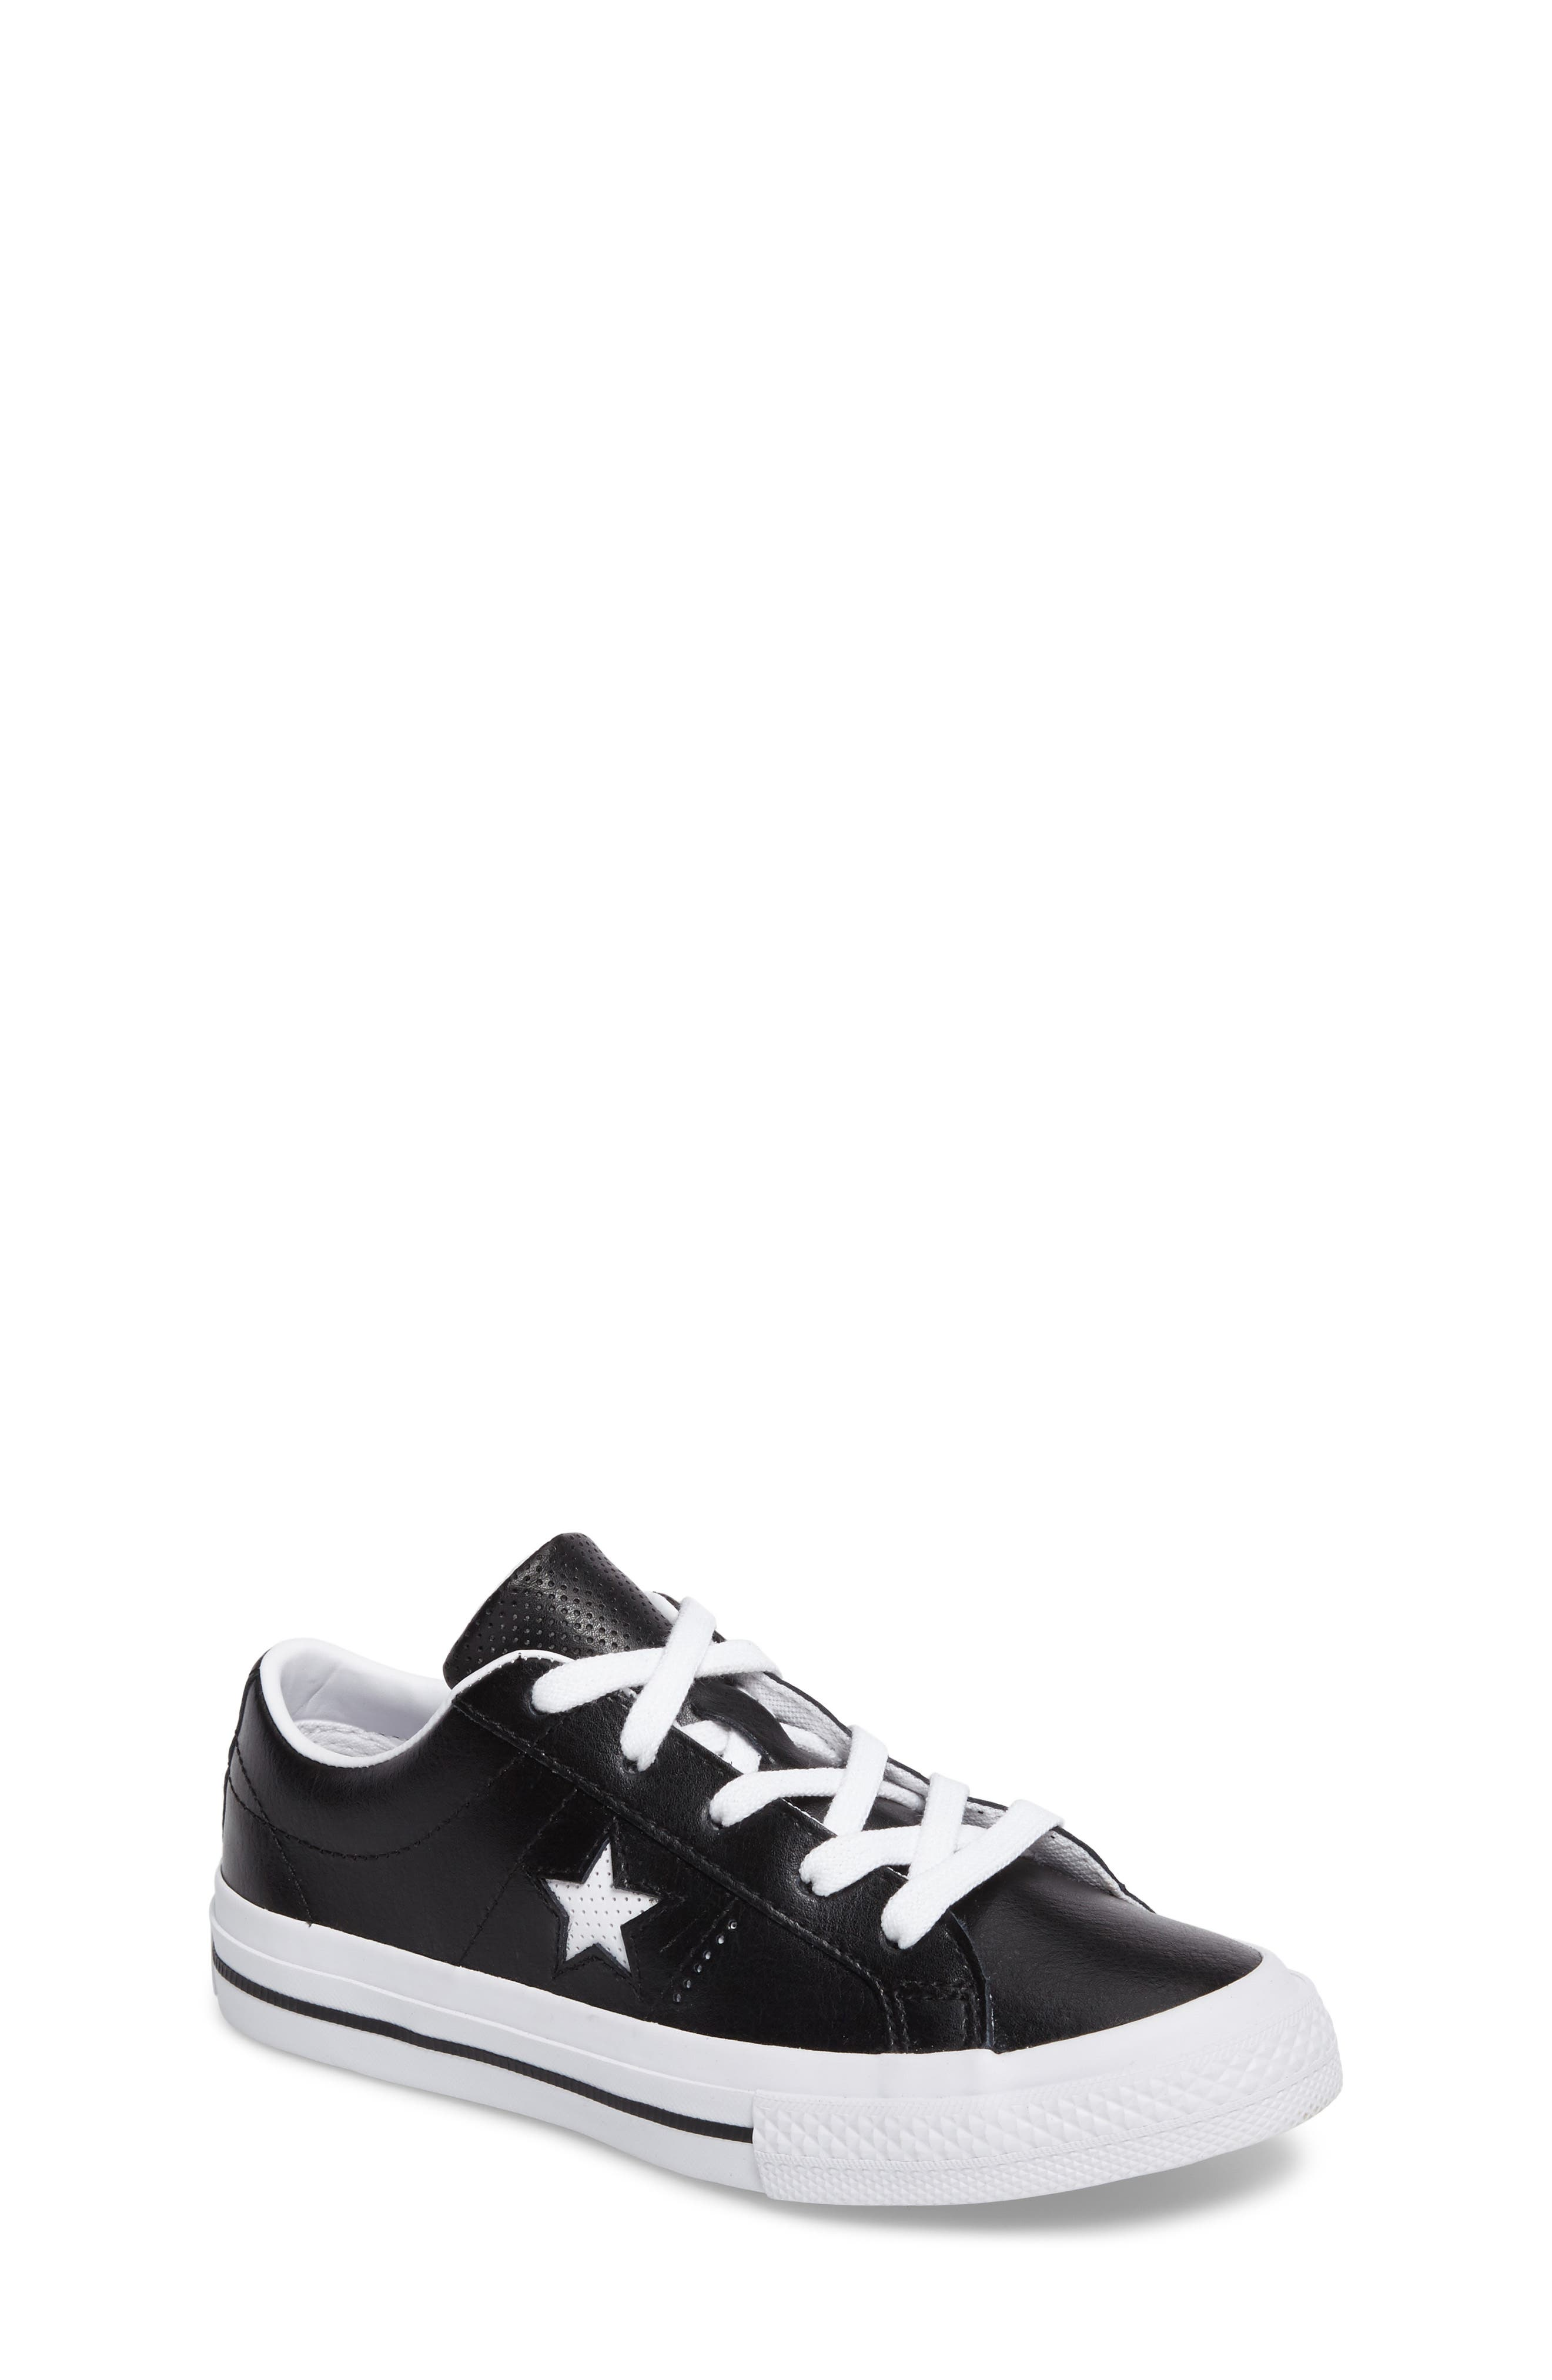 Chuck Taylor<sup>®</sup> All Star<sup>®</sup> One Star Sneaker,                         Main,                         color, Black Leather